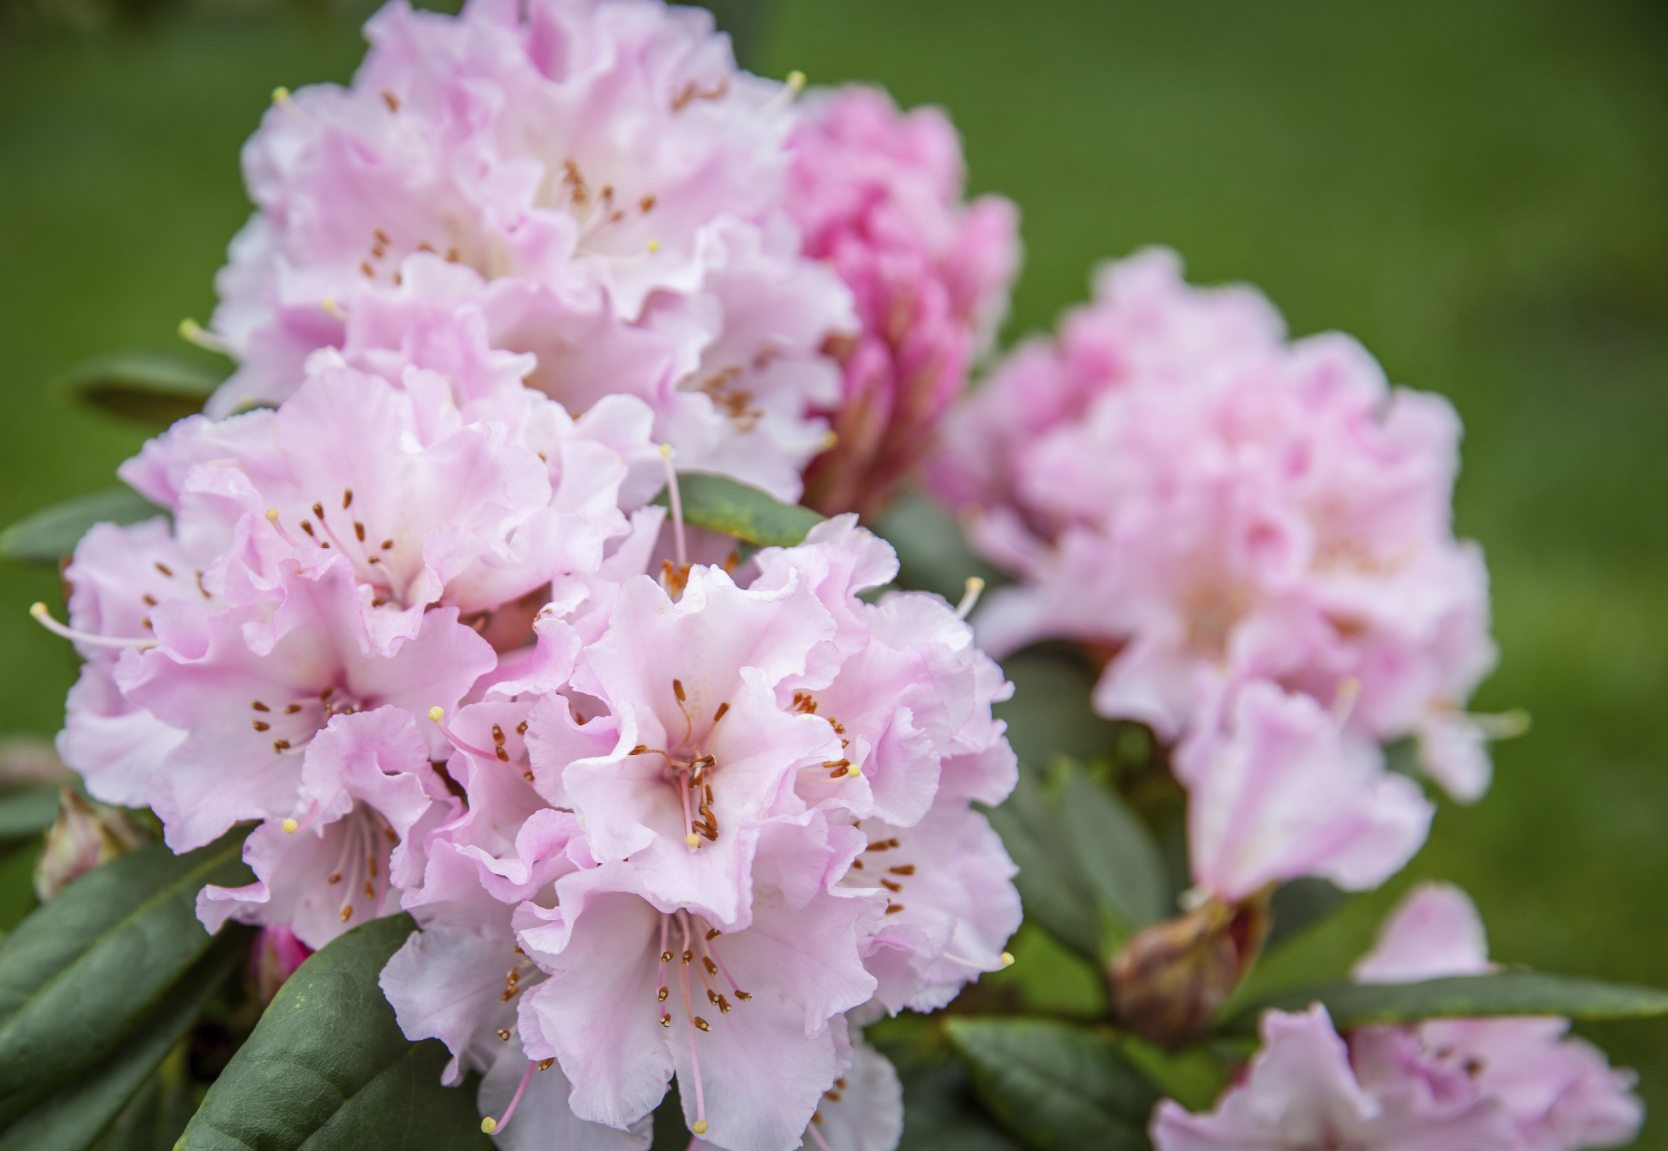 Rhododendron Care Tips On How To Grow A Rhododendron Bush